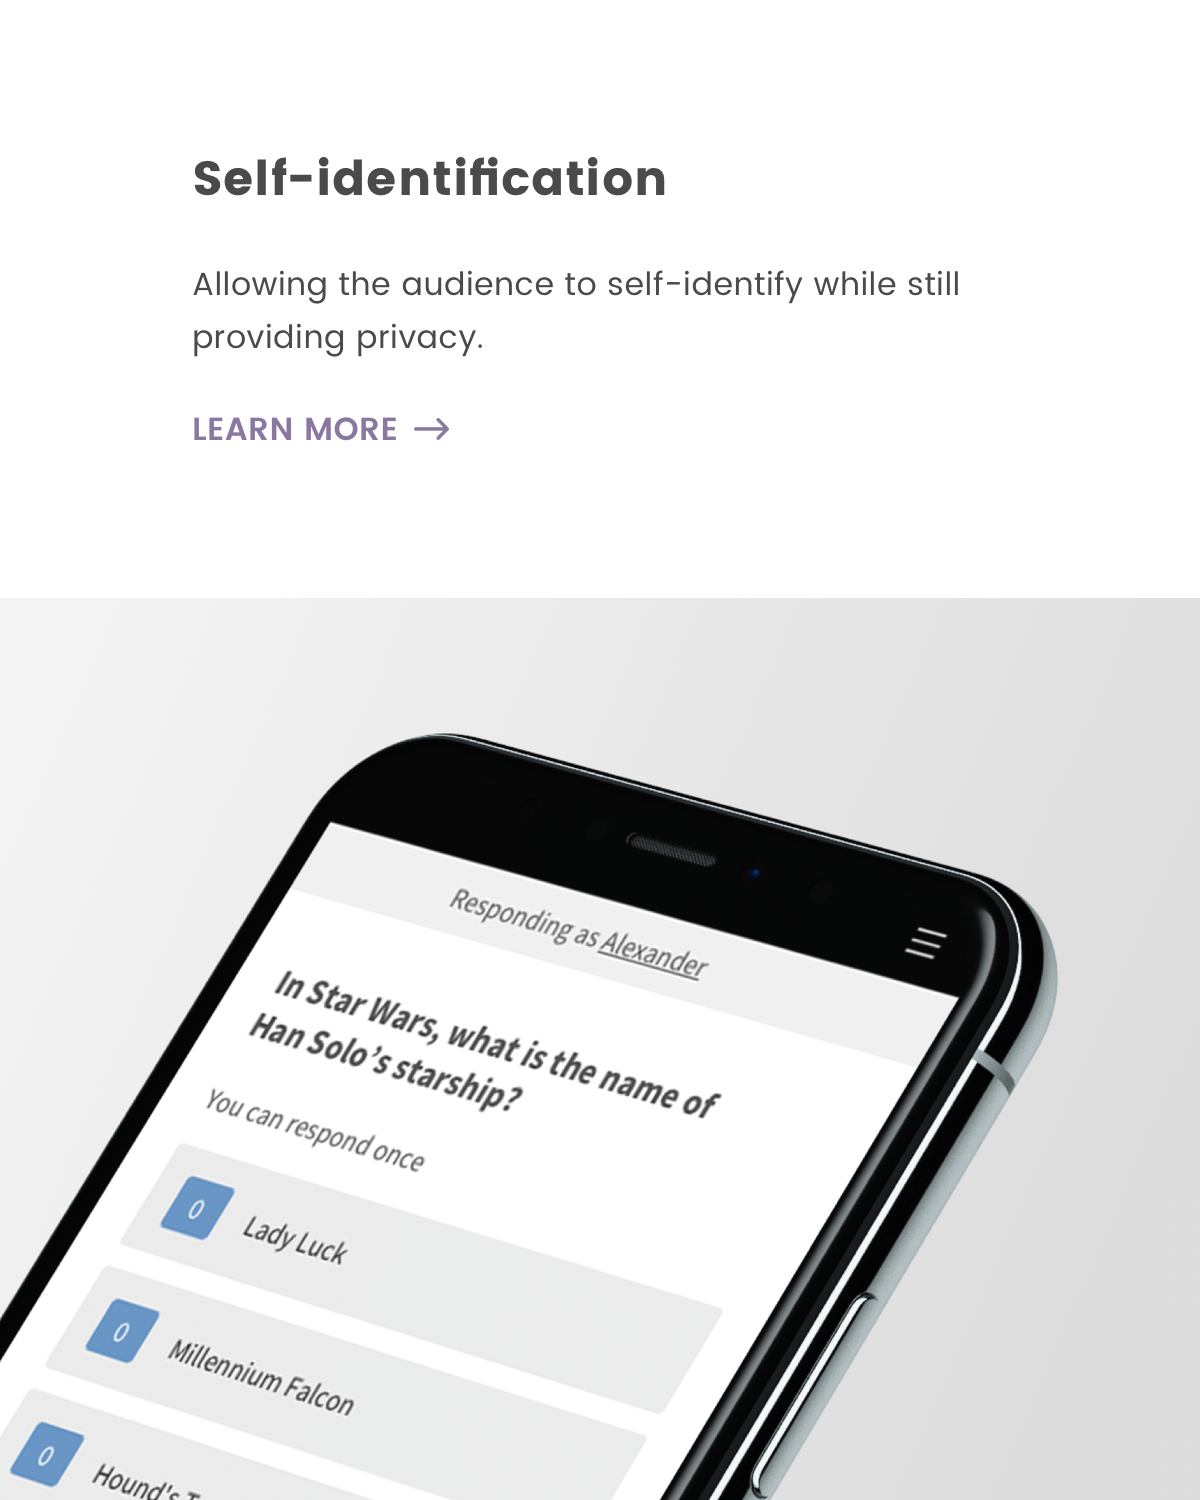 Self-identification as a participant